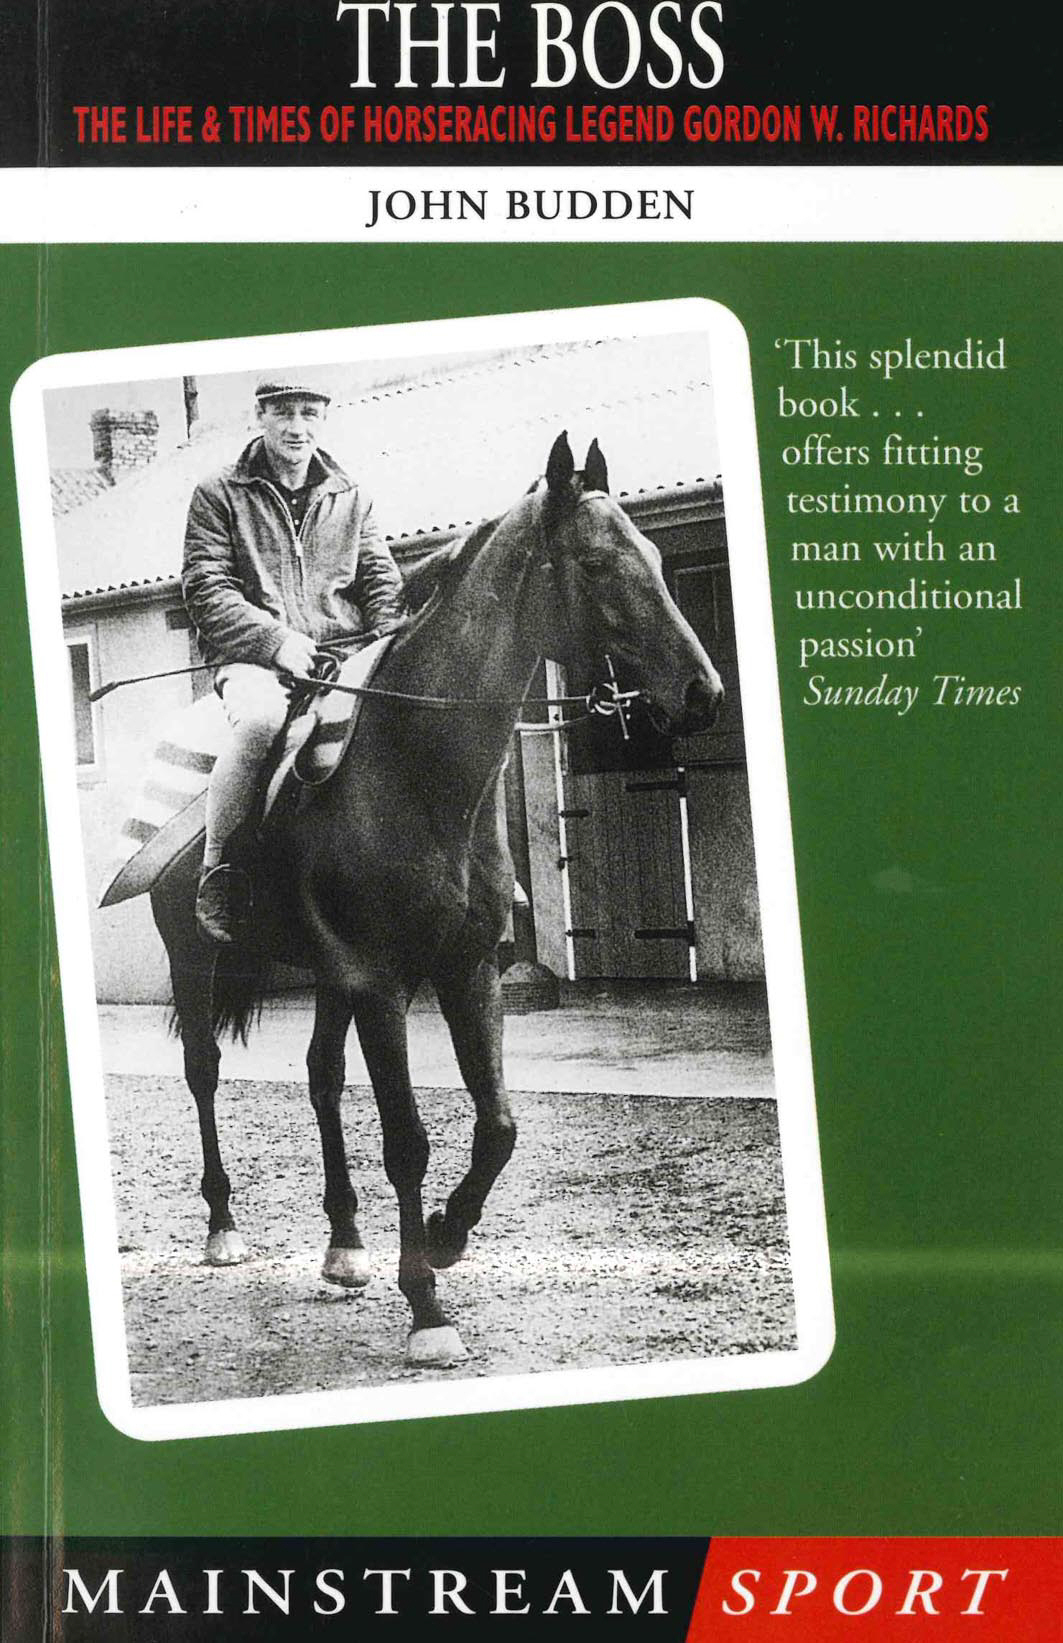 The Boss The Life and Times of Horseracing Legend Gordon W. Richards